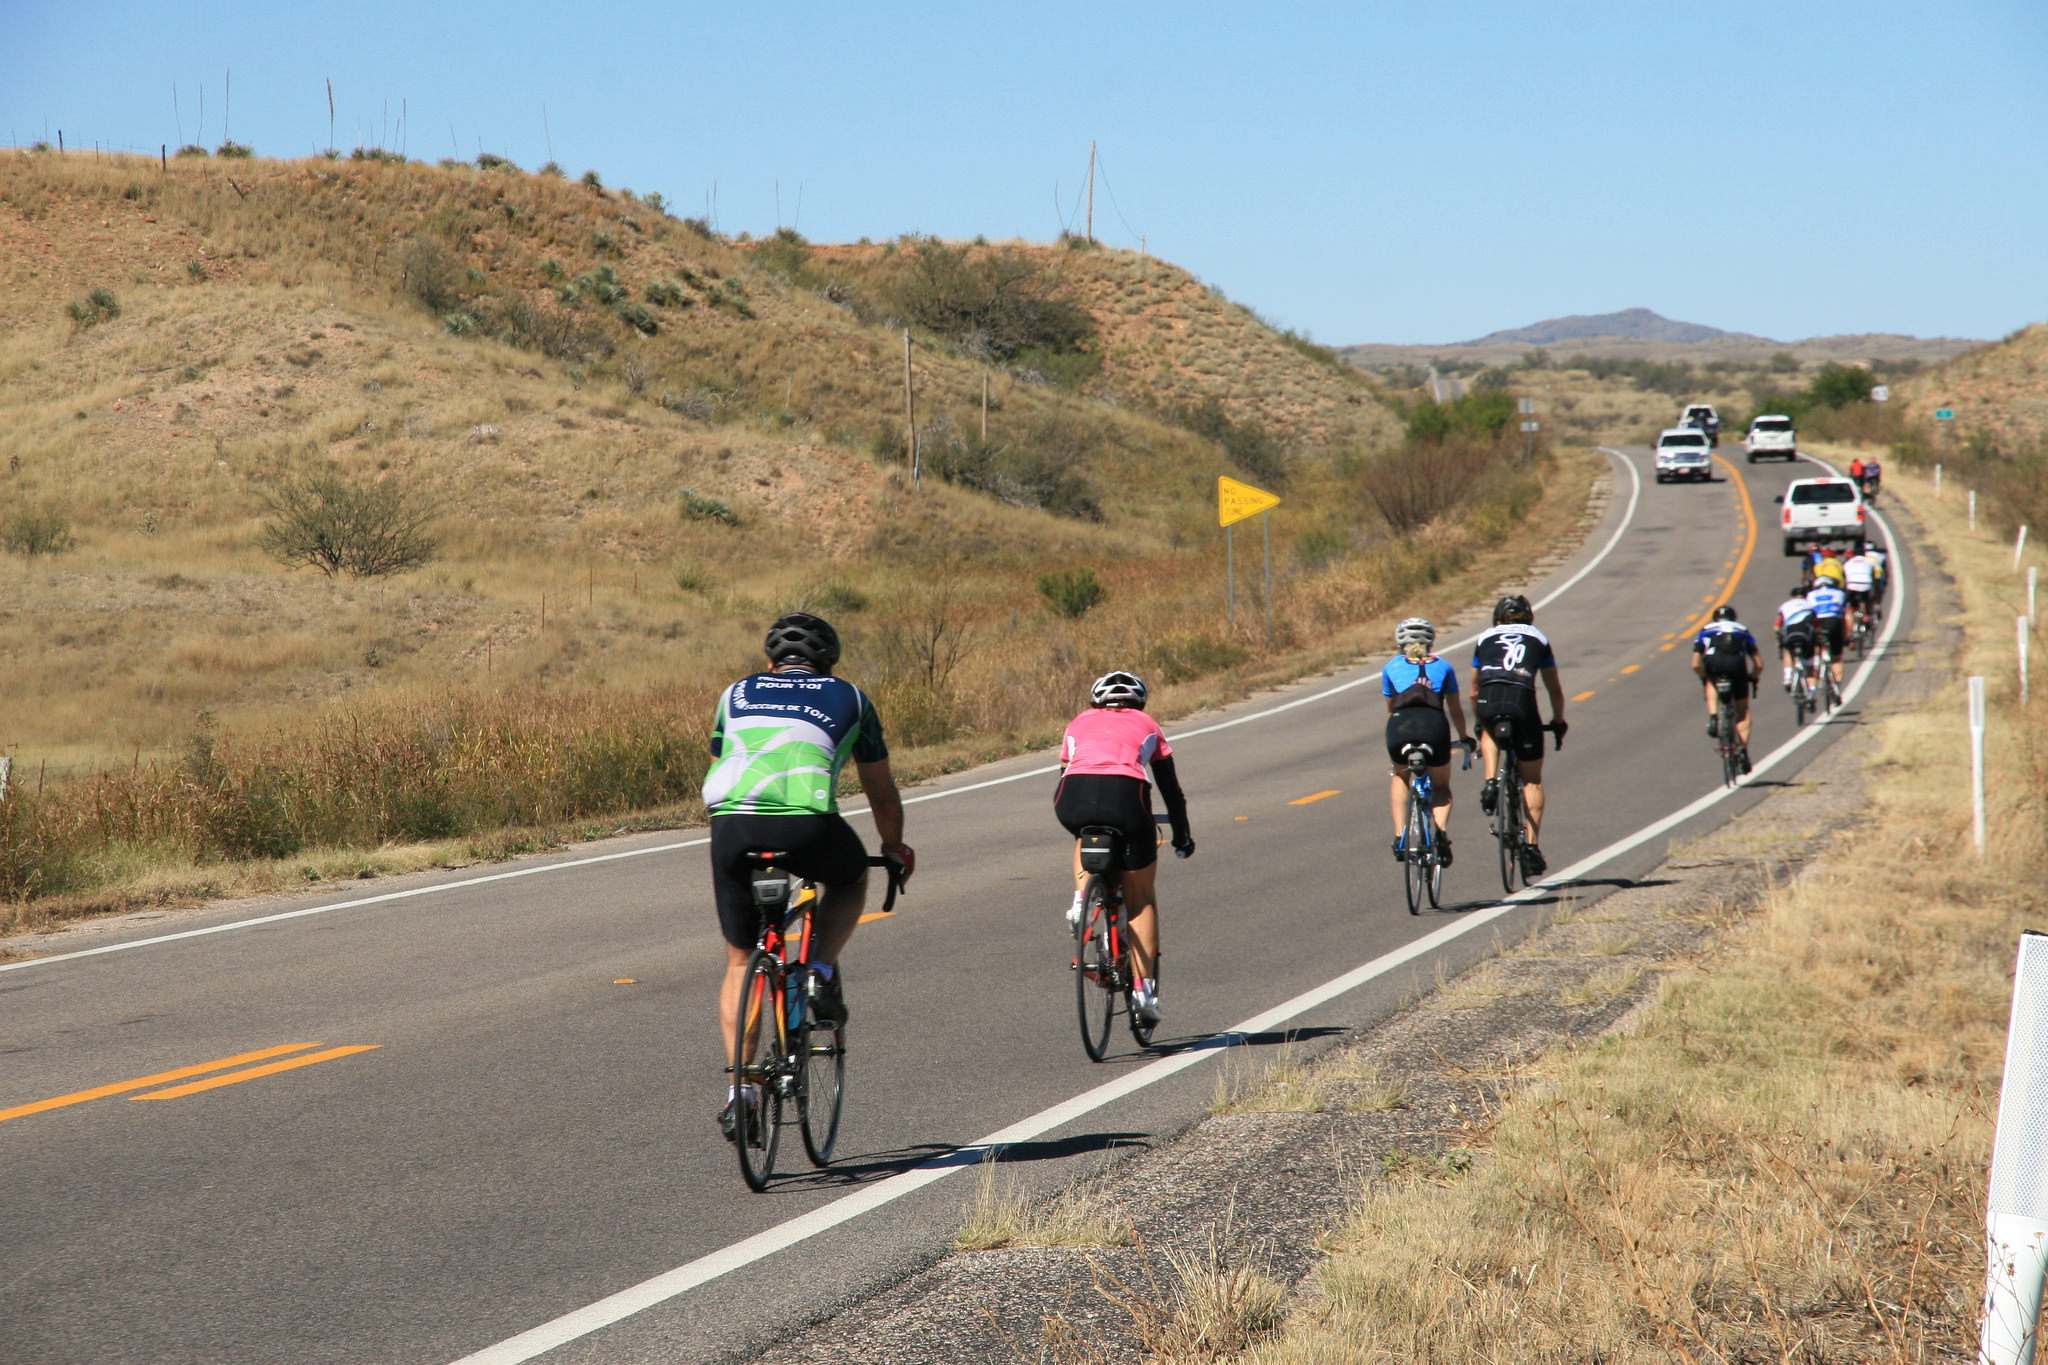 Bicyclists sharing the roadway